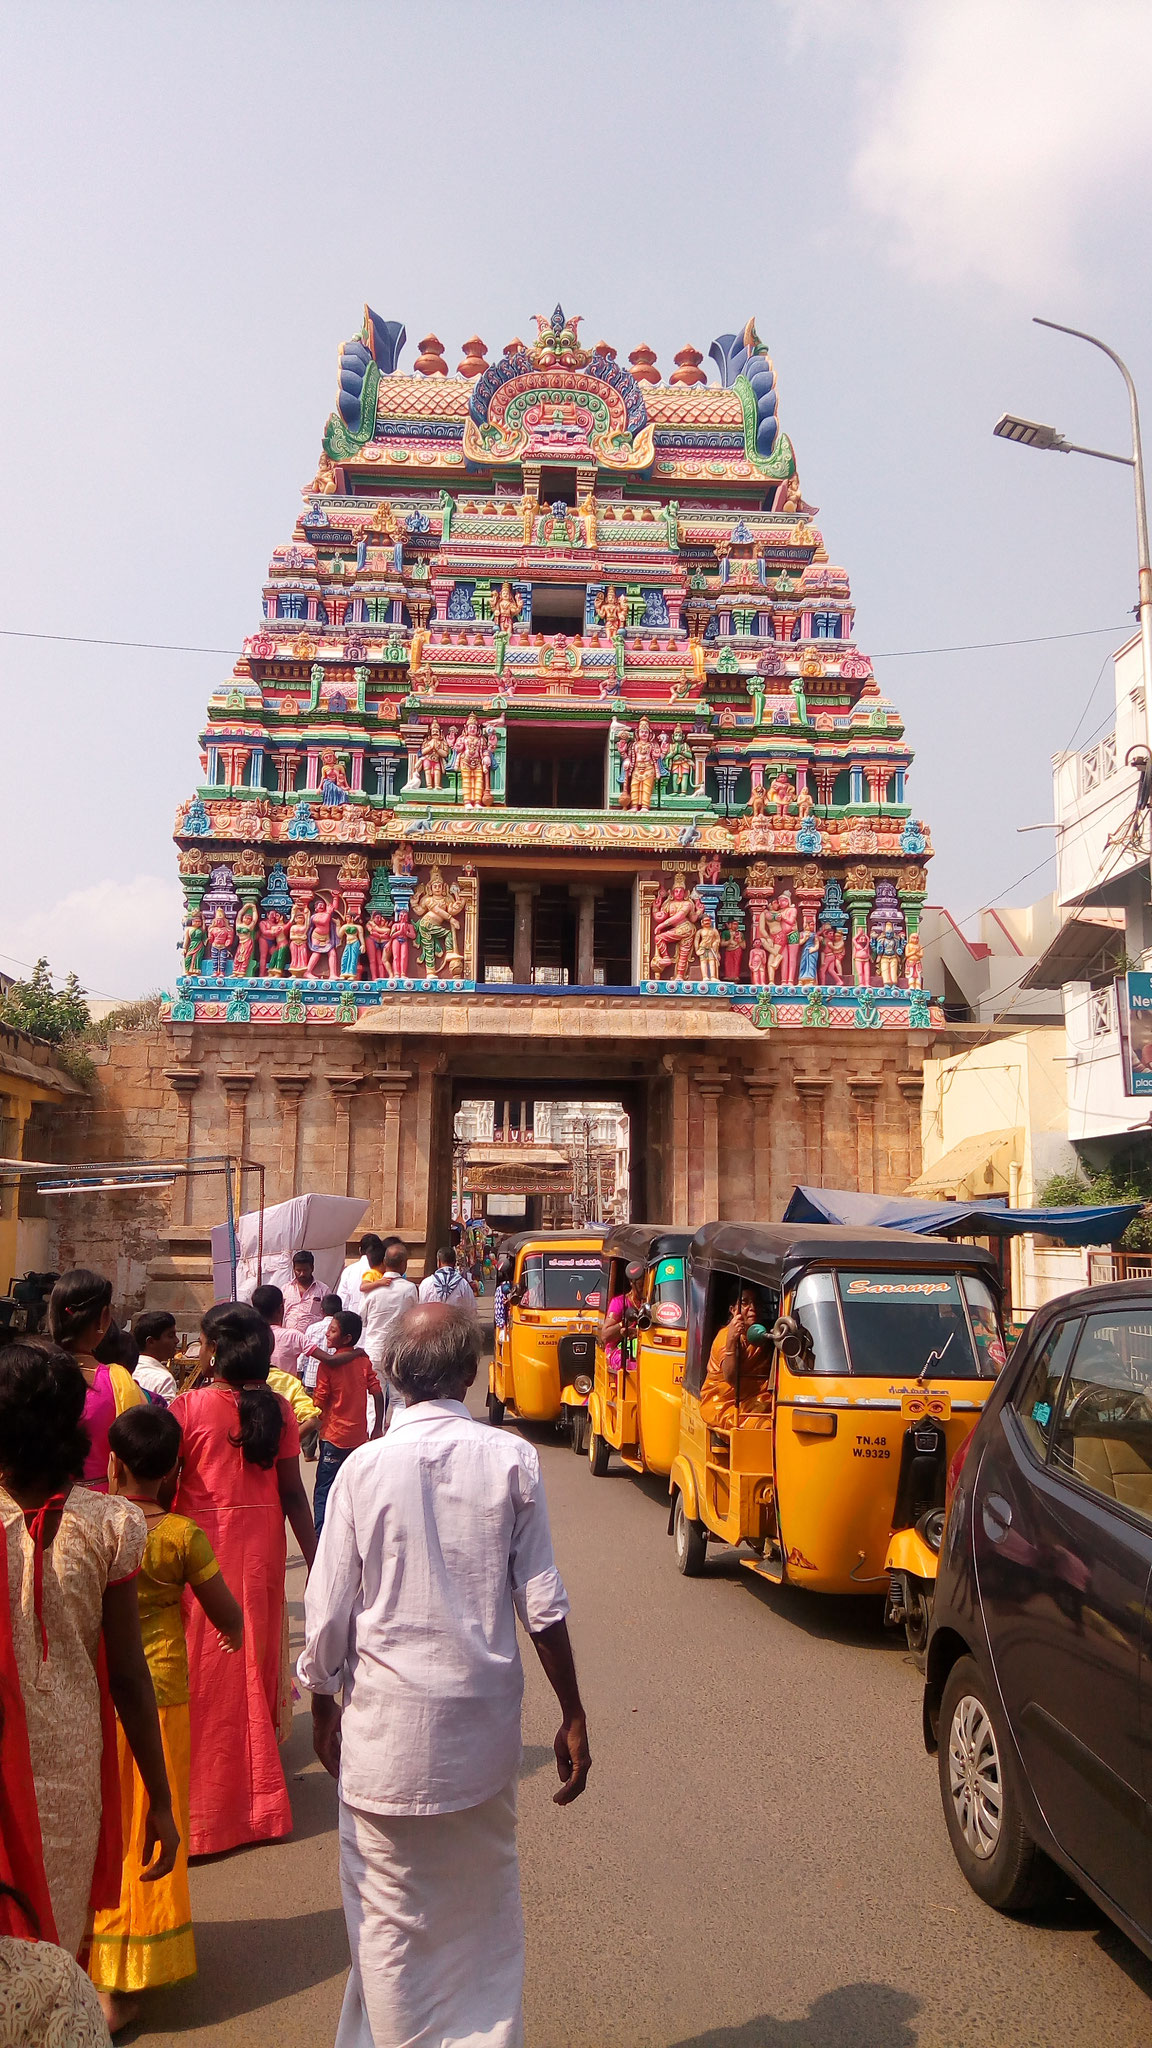 Stop-over on our way home: Trichy Temple